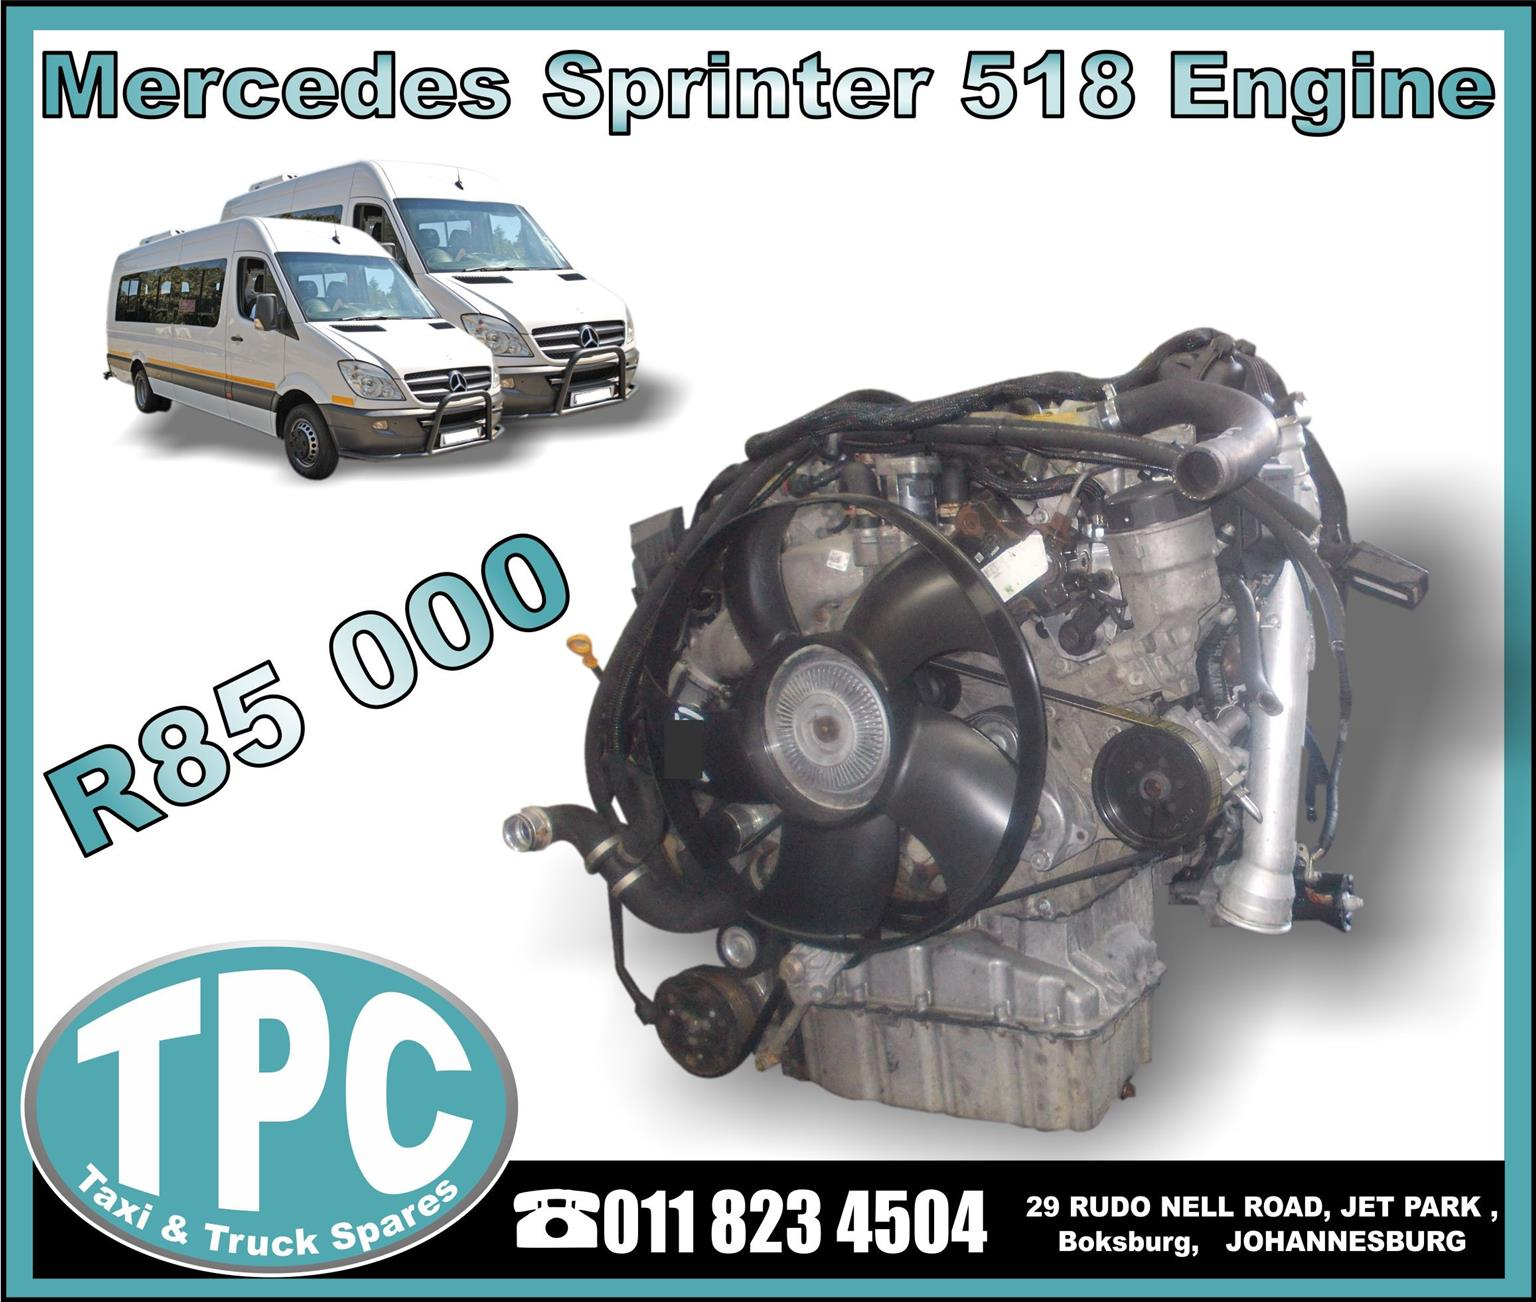 Mercedes Sprinter 518 Engine - Good Condition - New And Used Replacement Parts.